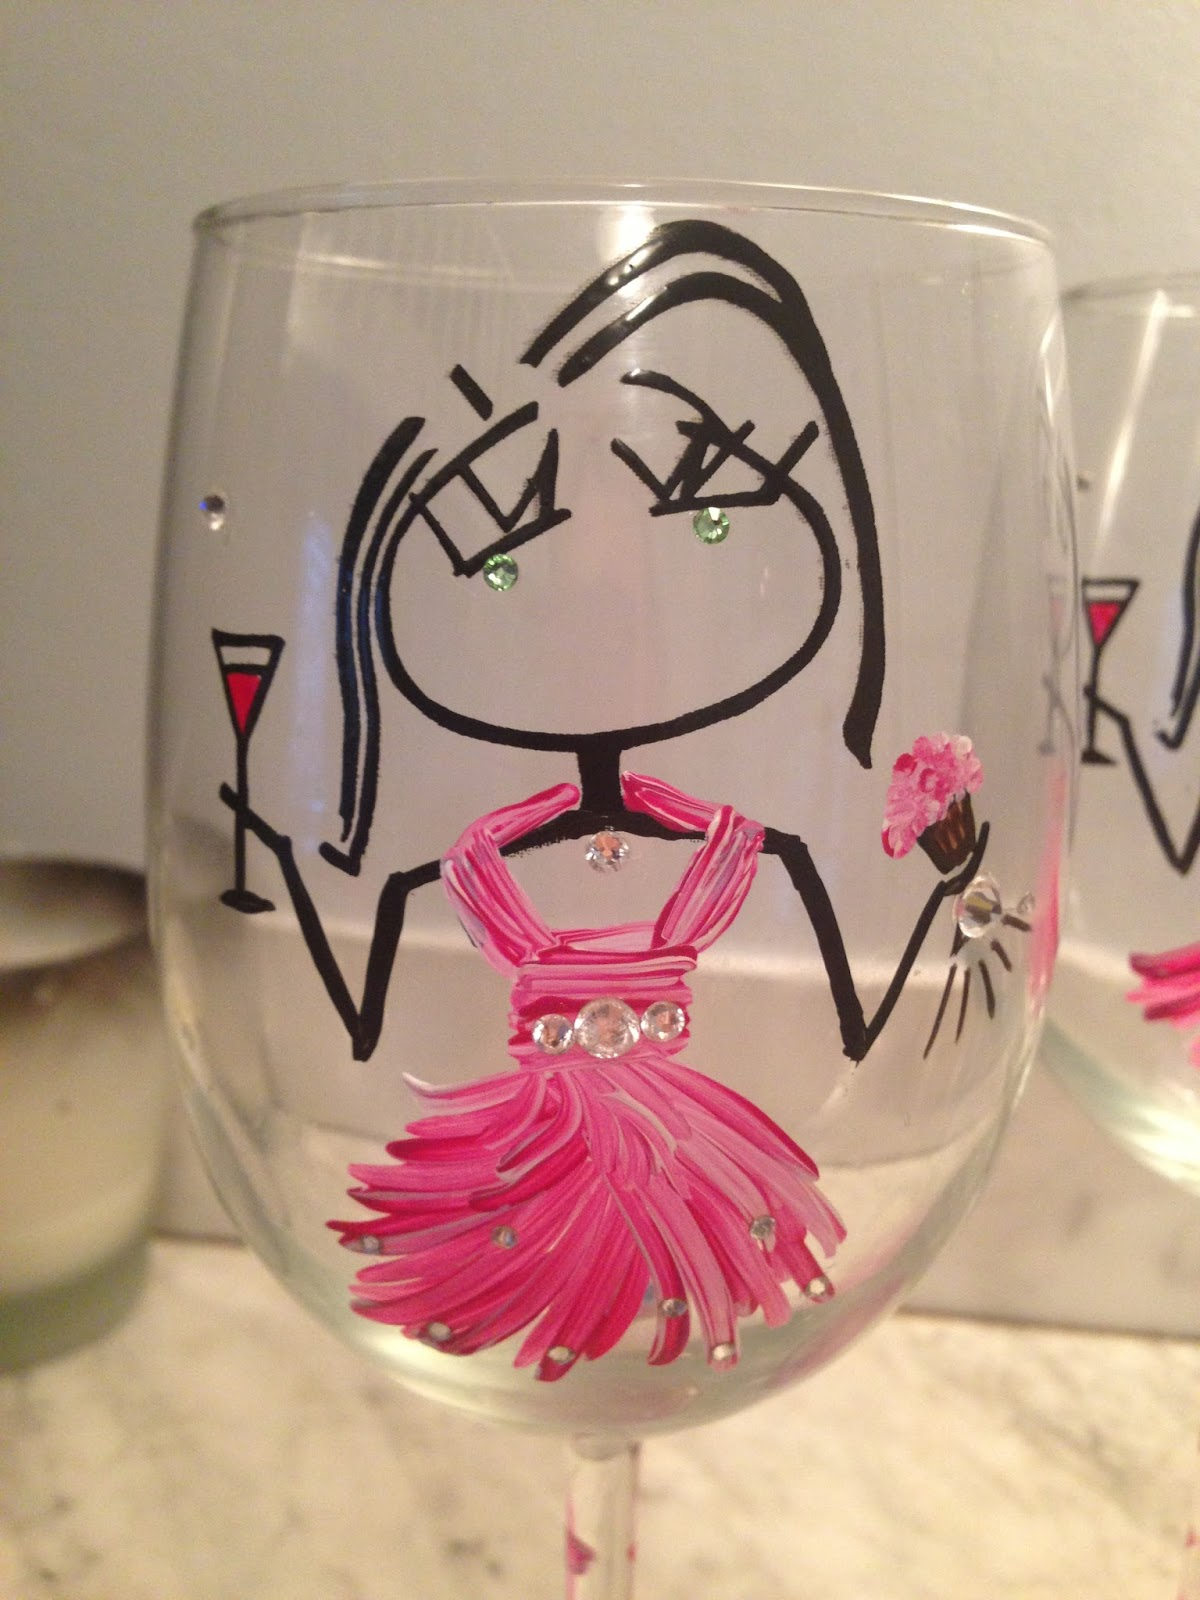 Cupcakes & Couture: {CLOSED} Giveaway: RobYn With a Y Wine Glasses!